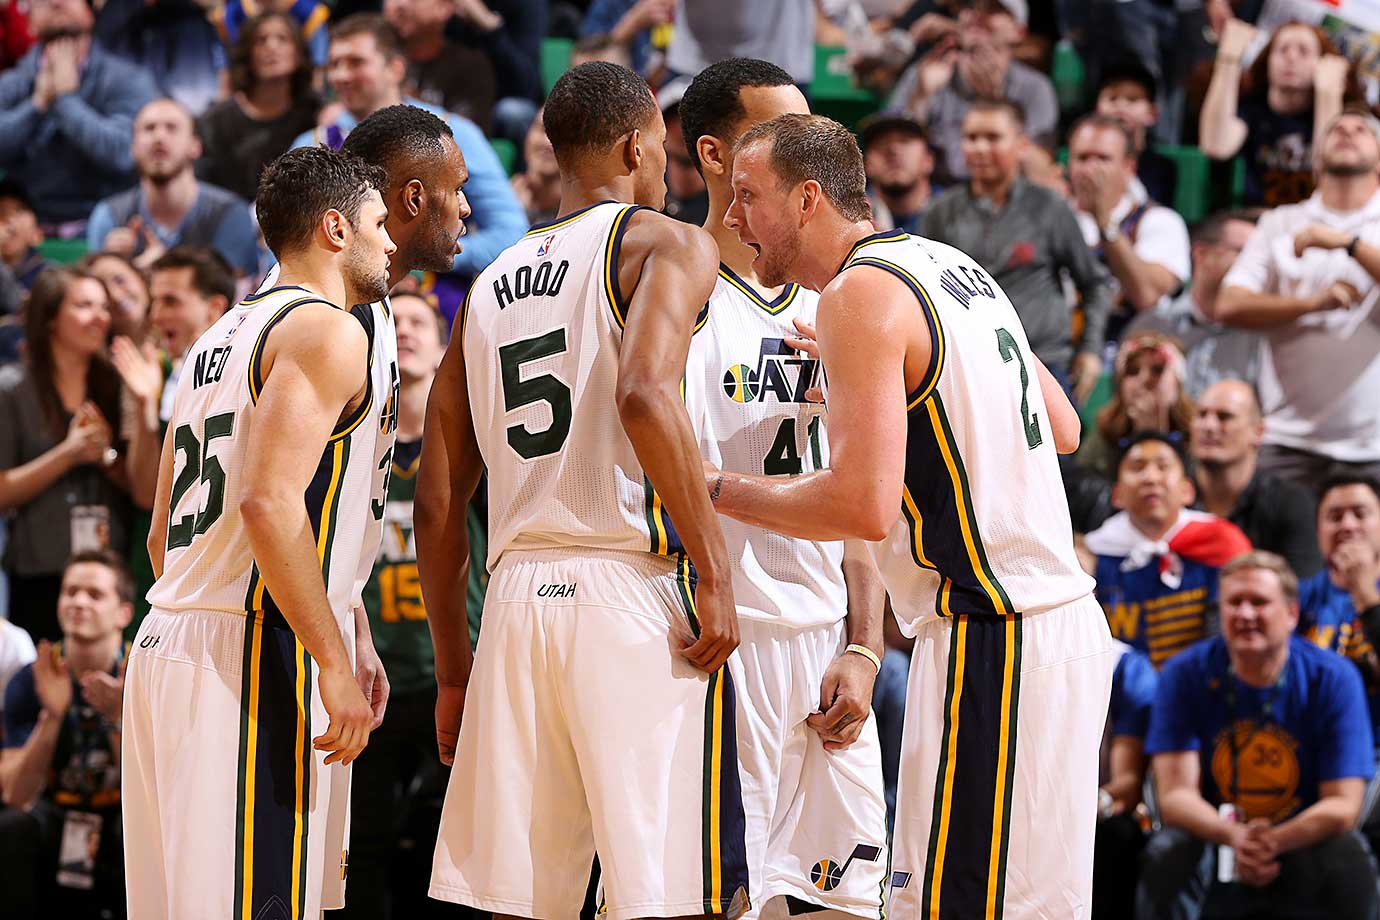 The Utah Jazz try to devise a way to defeat the Warriors, but to no avail.